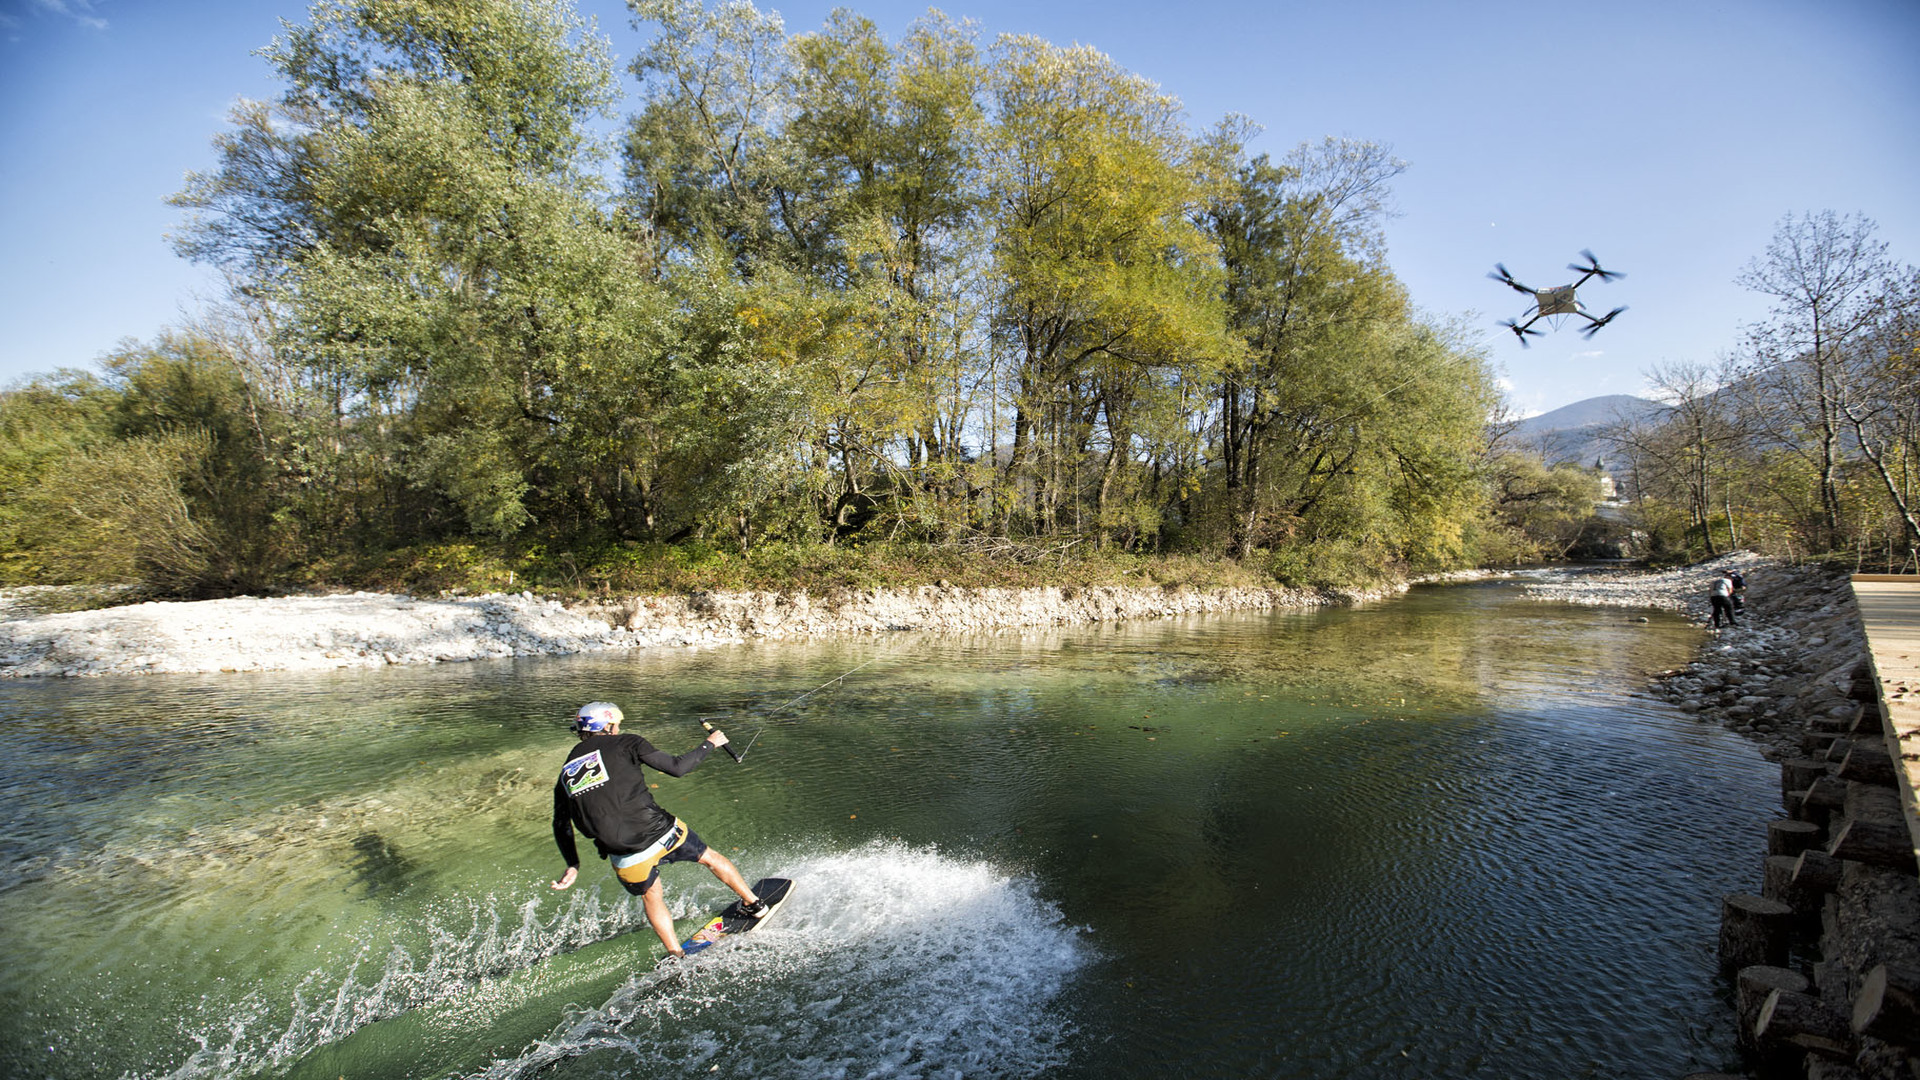 Innovative wakeskate drone ride with AURIX? and CoolGaN?